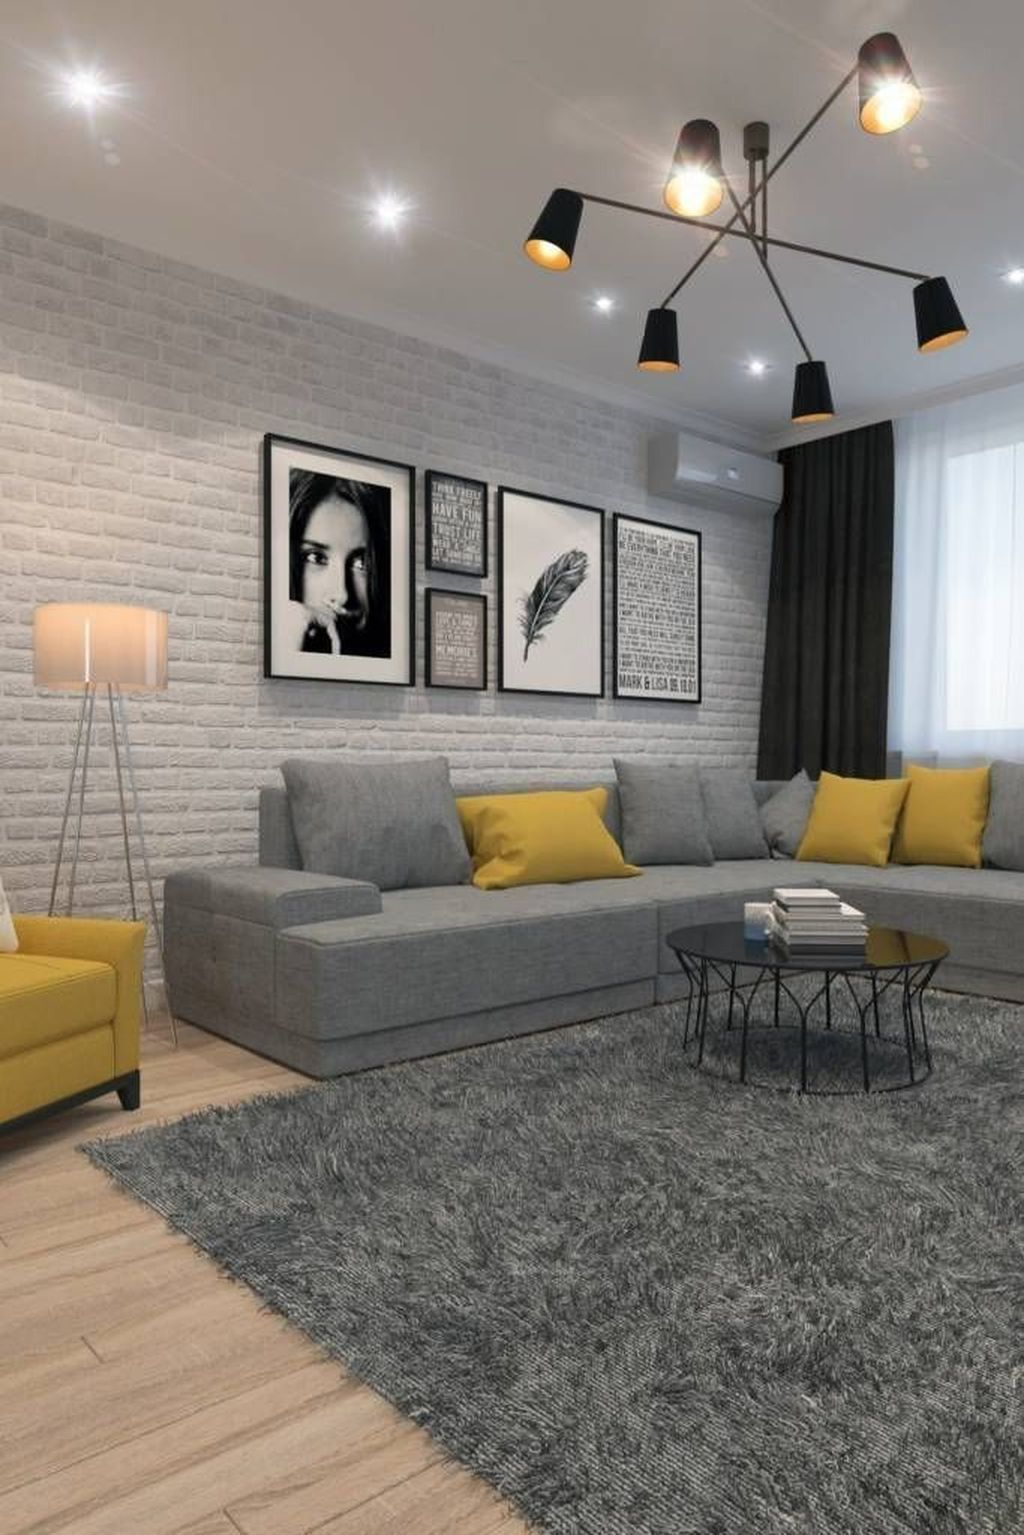 39 Marvelous Living Room Decorations Ideas To Copy Right Now Red Furniture Living Room Living Room Scandinavian Living Room Color